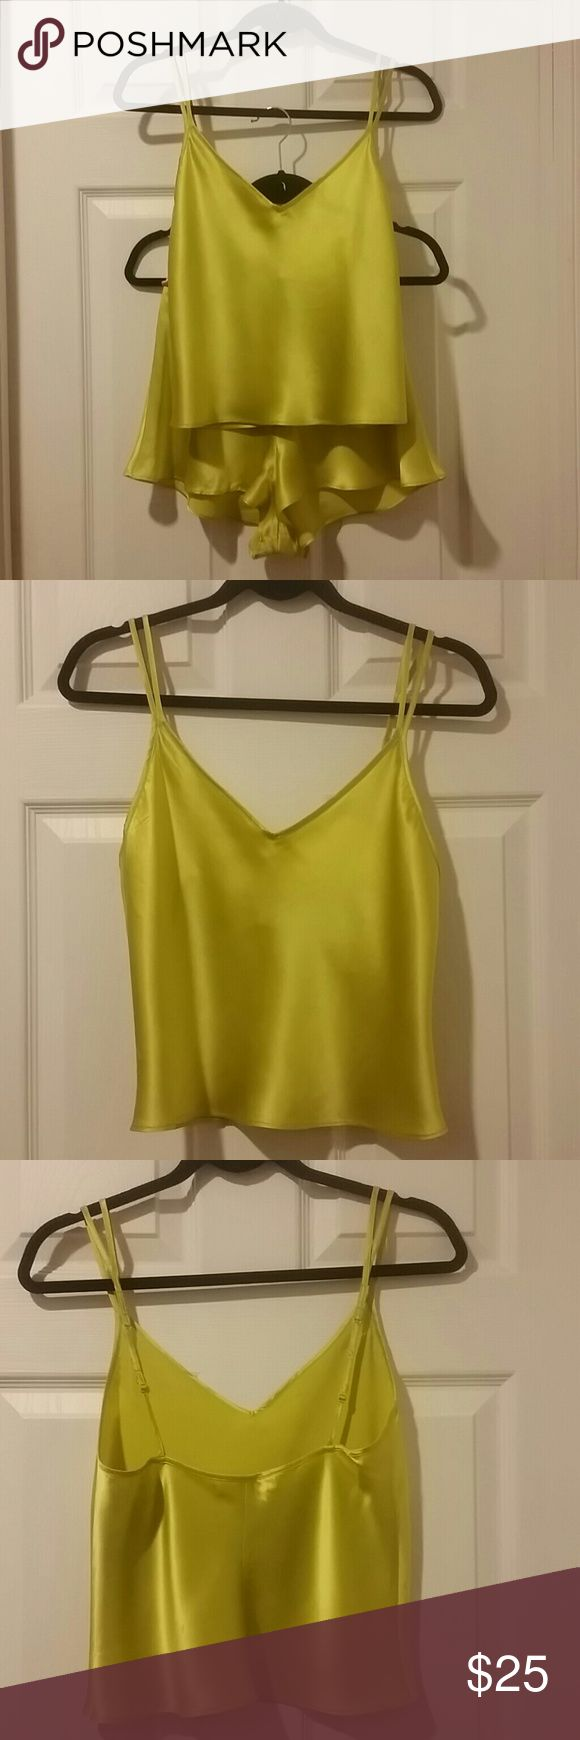 """**VICTORIA SECRET** CAMI & TAP SHORT SET *Victoria Secret* Silky Vivid Lime Green Cami & Tap Short Set. Tooo Die For! So lucious and flowy! The single split to double adjustable spaghetti straps on each shoulder help to ease slippage. The Cami is V shaped at front and straight across back. Side seam drop is 10"""". The tap pant drop is 11"""" as well. A MUST HAVE! Victoria's Secret Intimates & Sleepwear Chemises & Slips"""